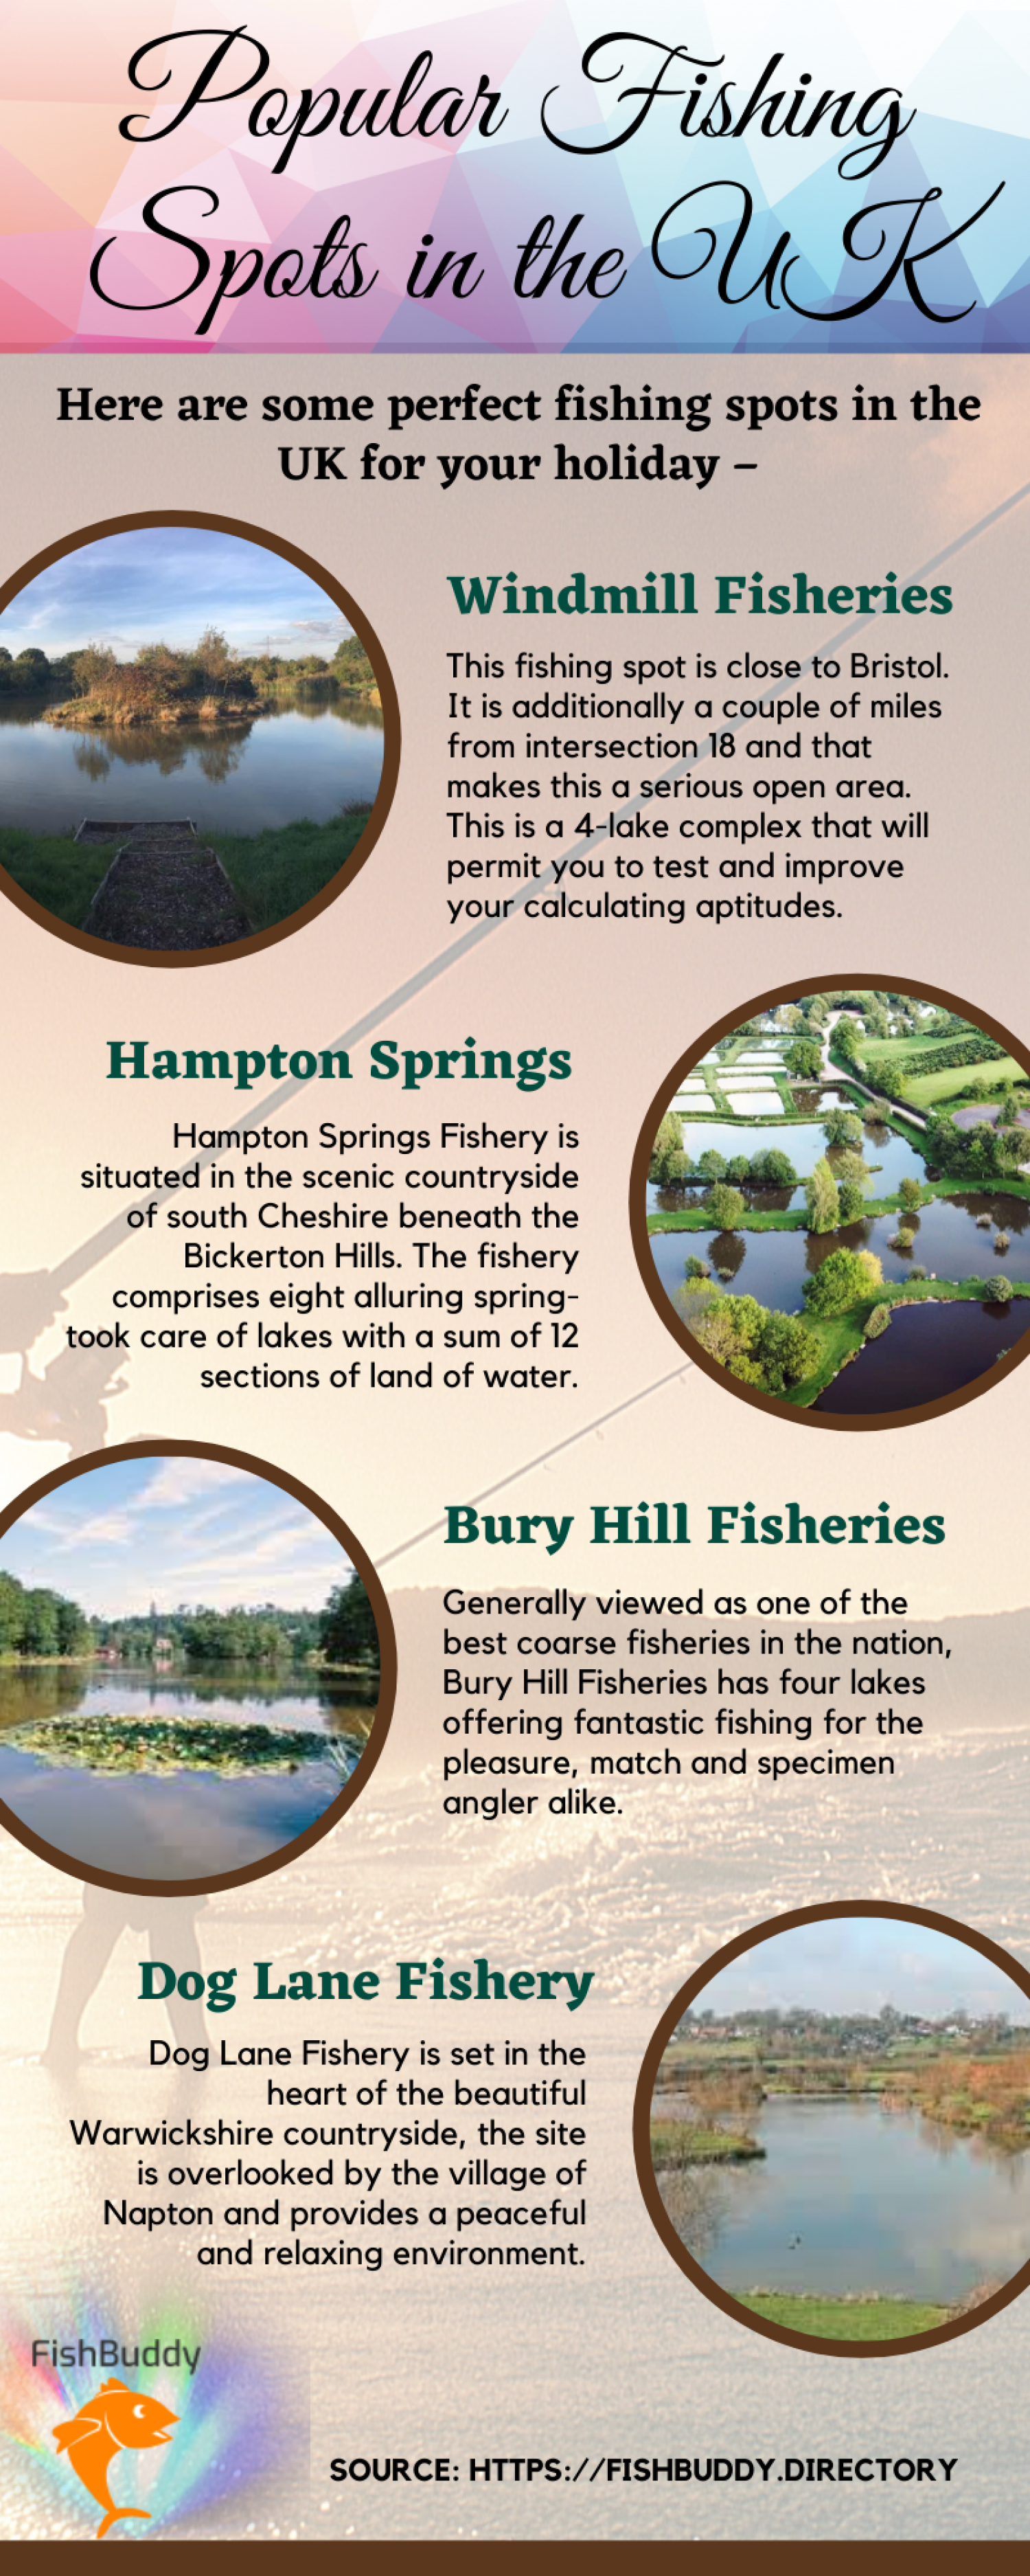 The Best Fishing Locations In The UK – Fishbuddy Directory Infographic